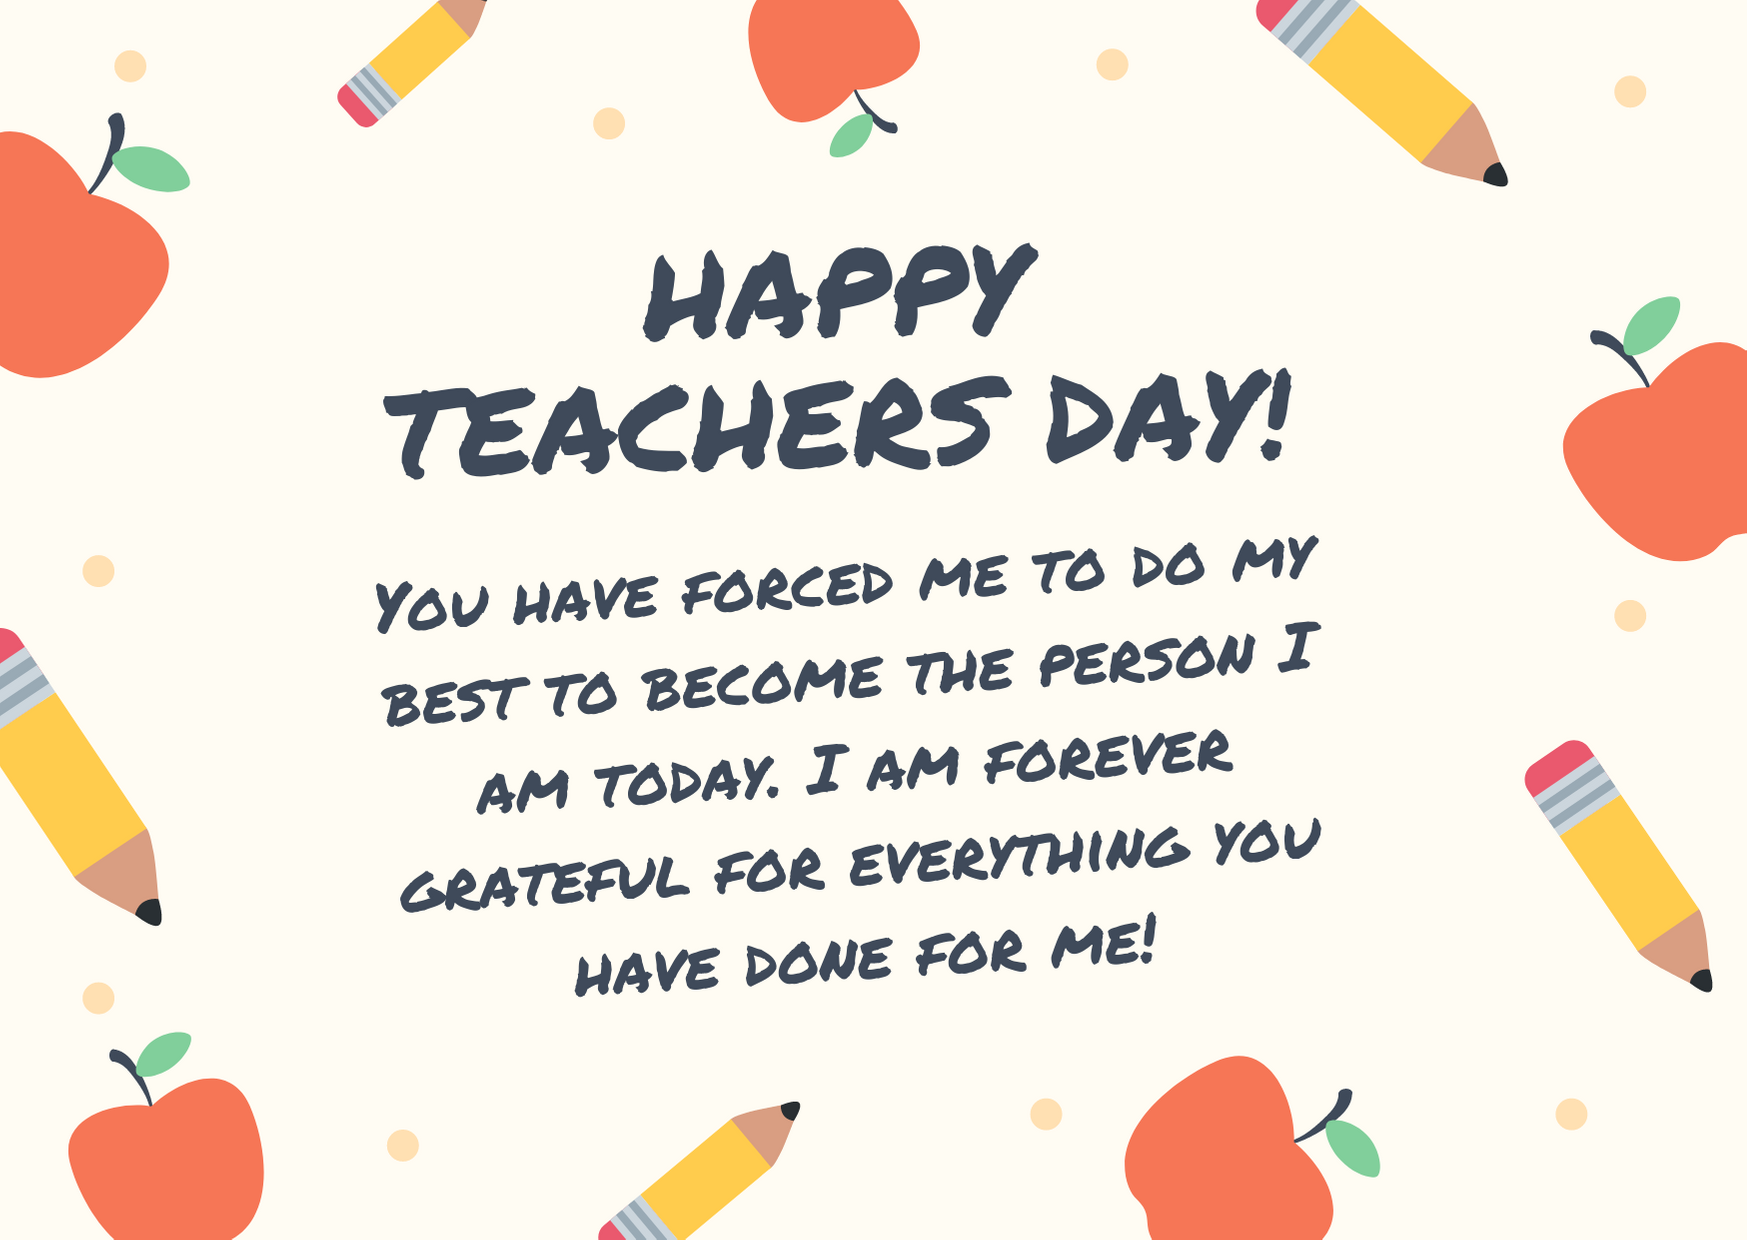 teachers day wishes in one line